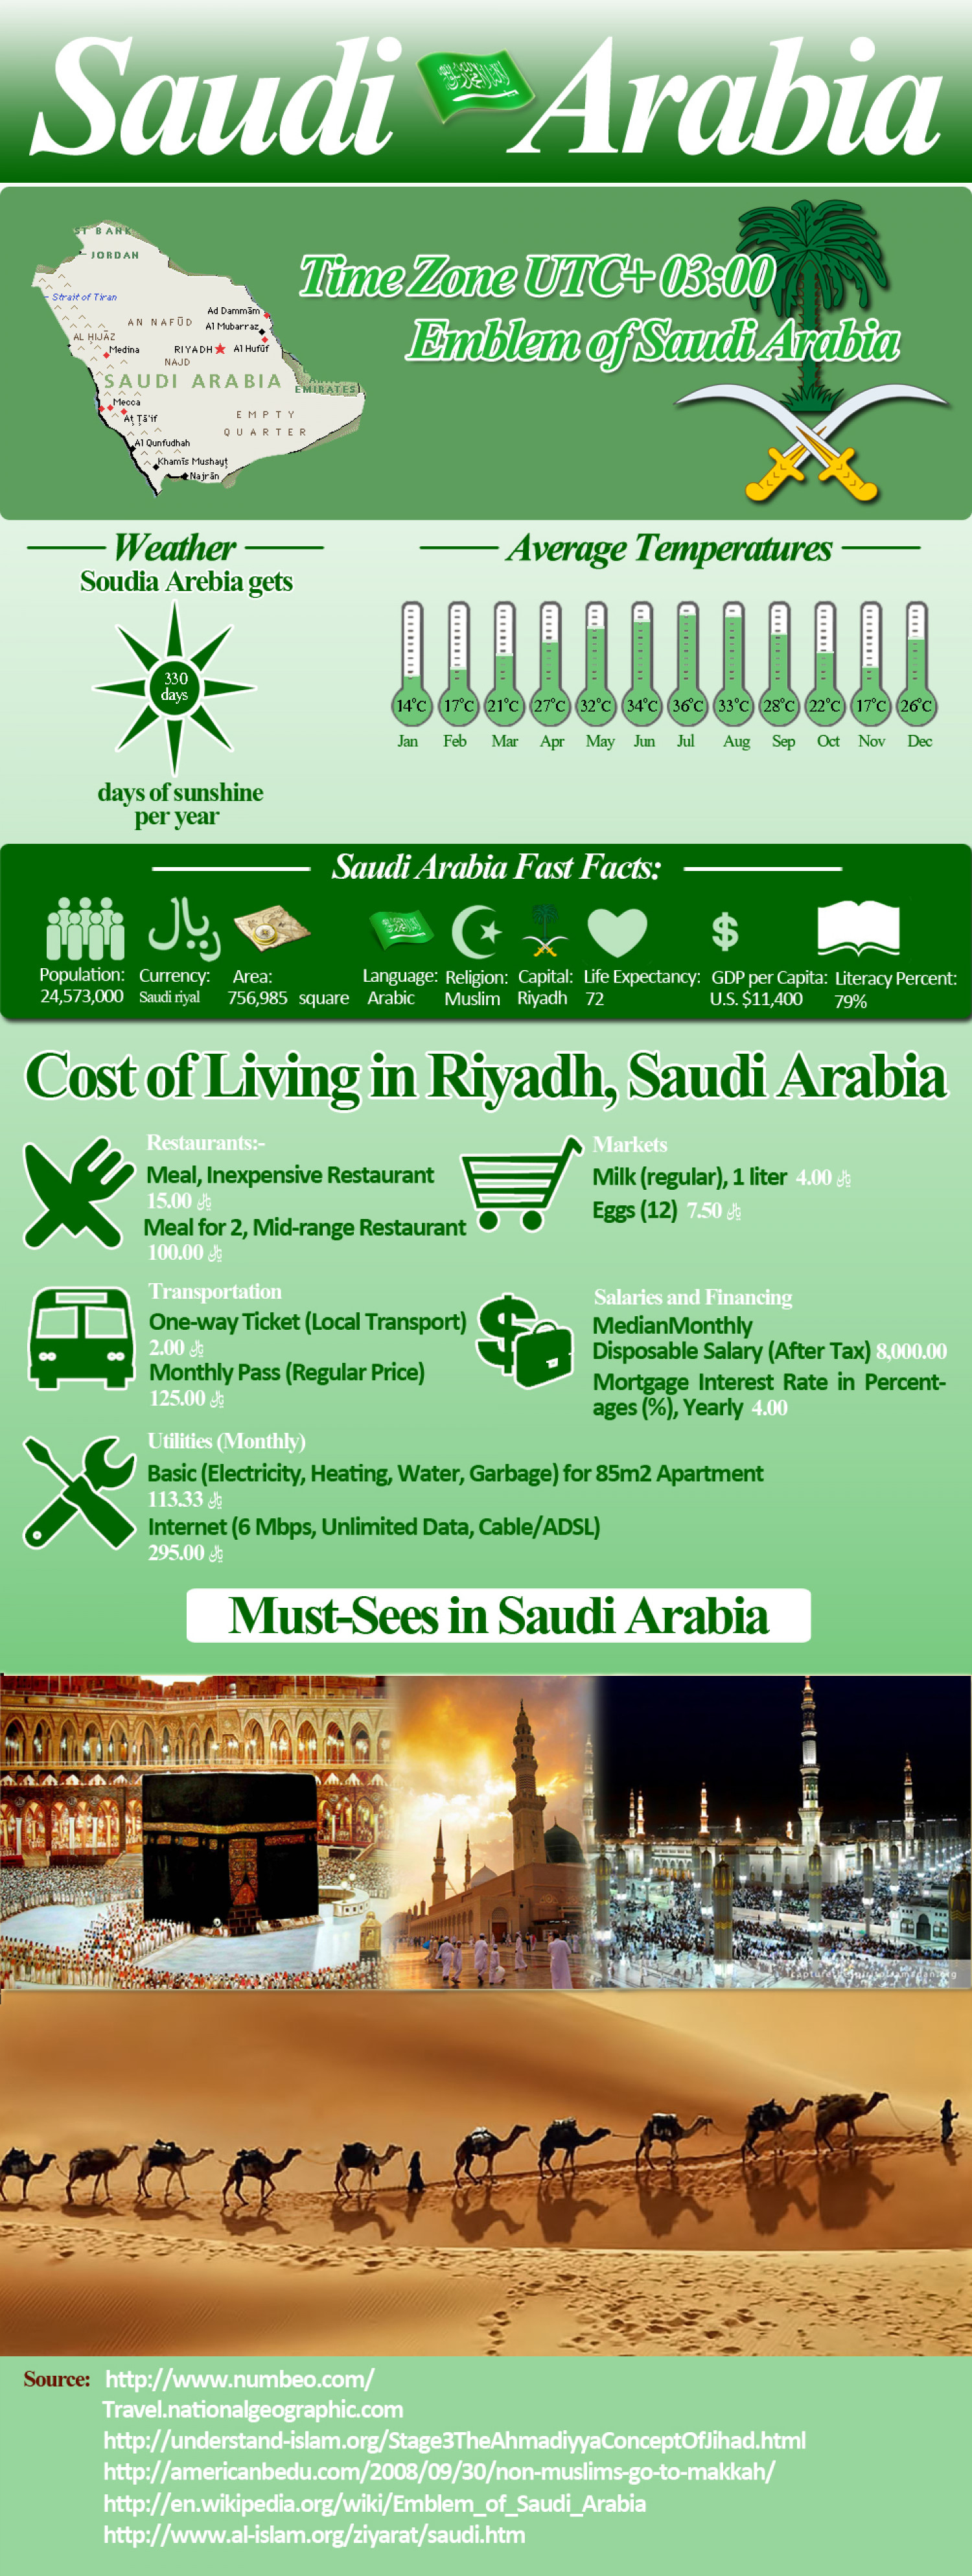 The Tales of Saudi Arabia Infographic